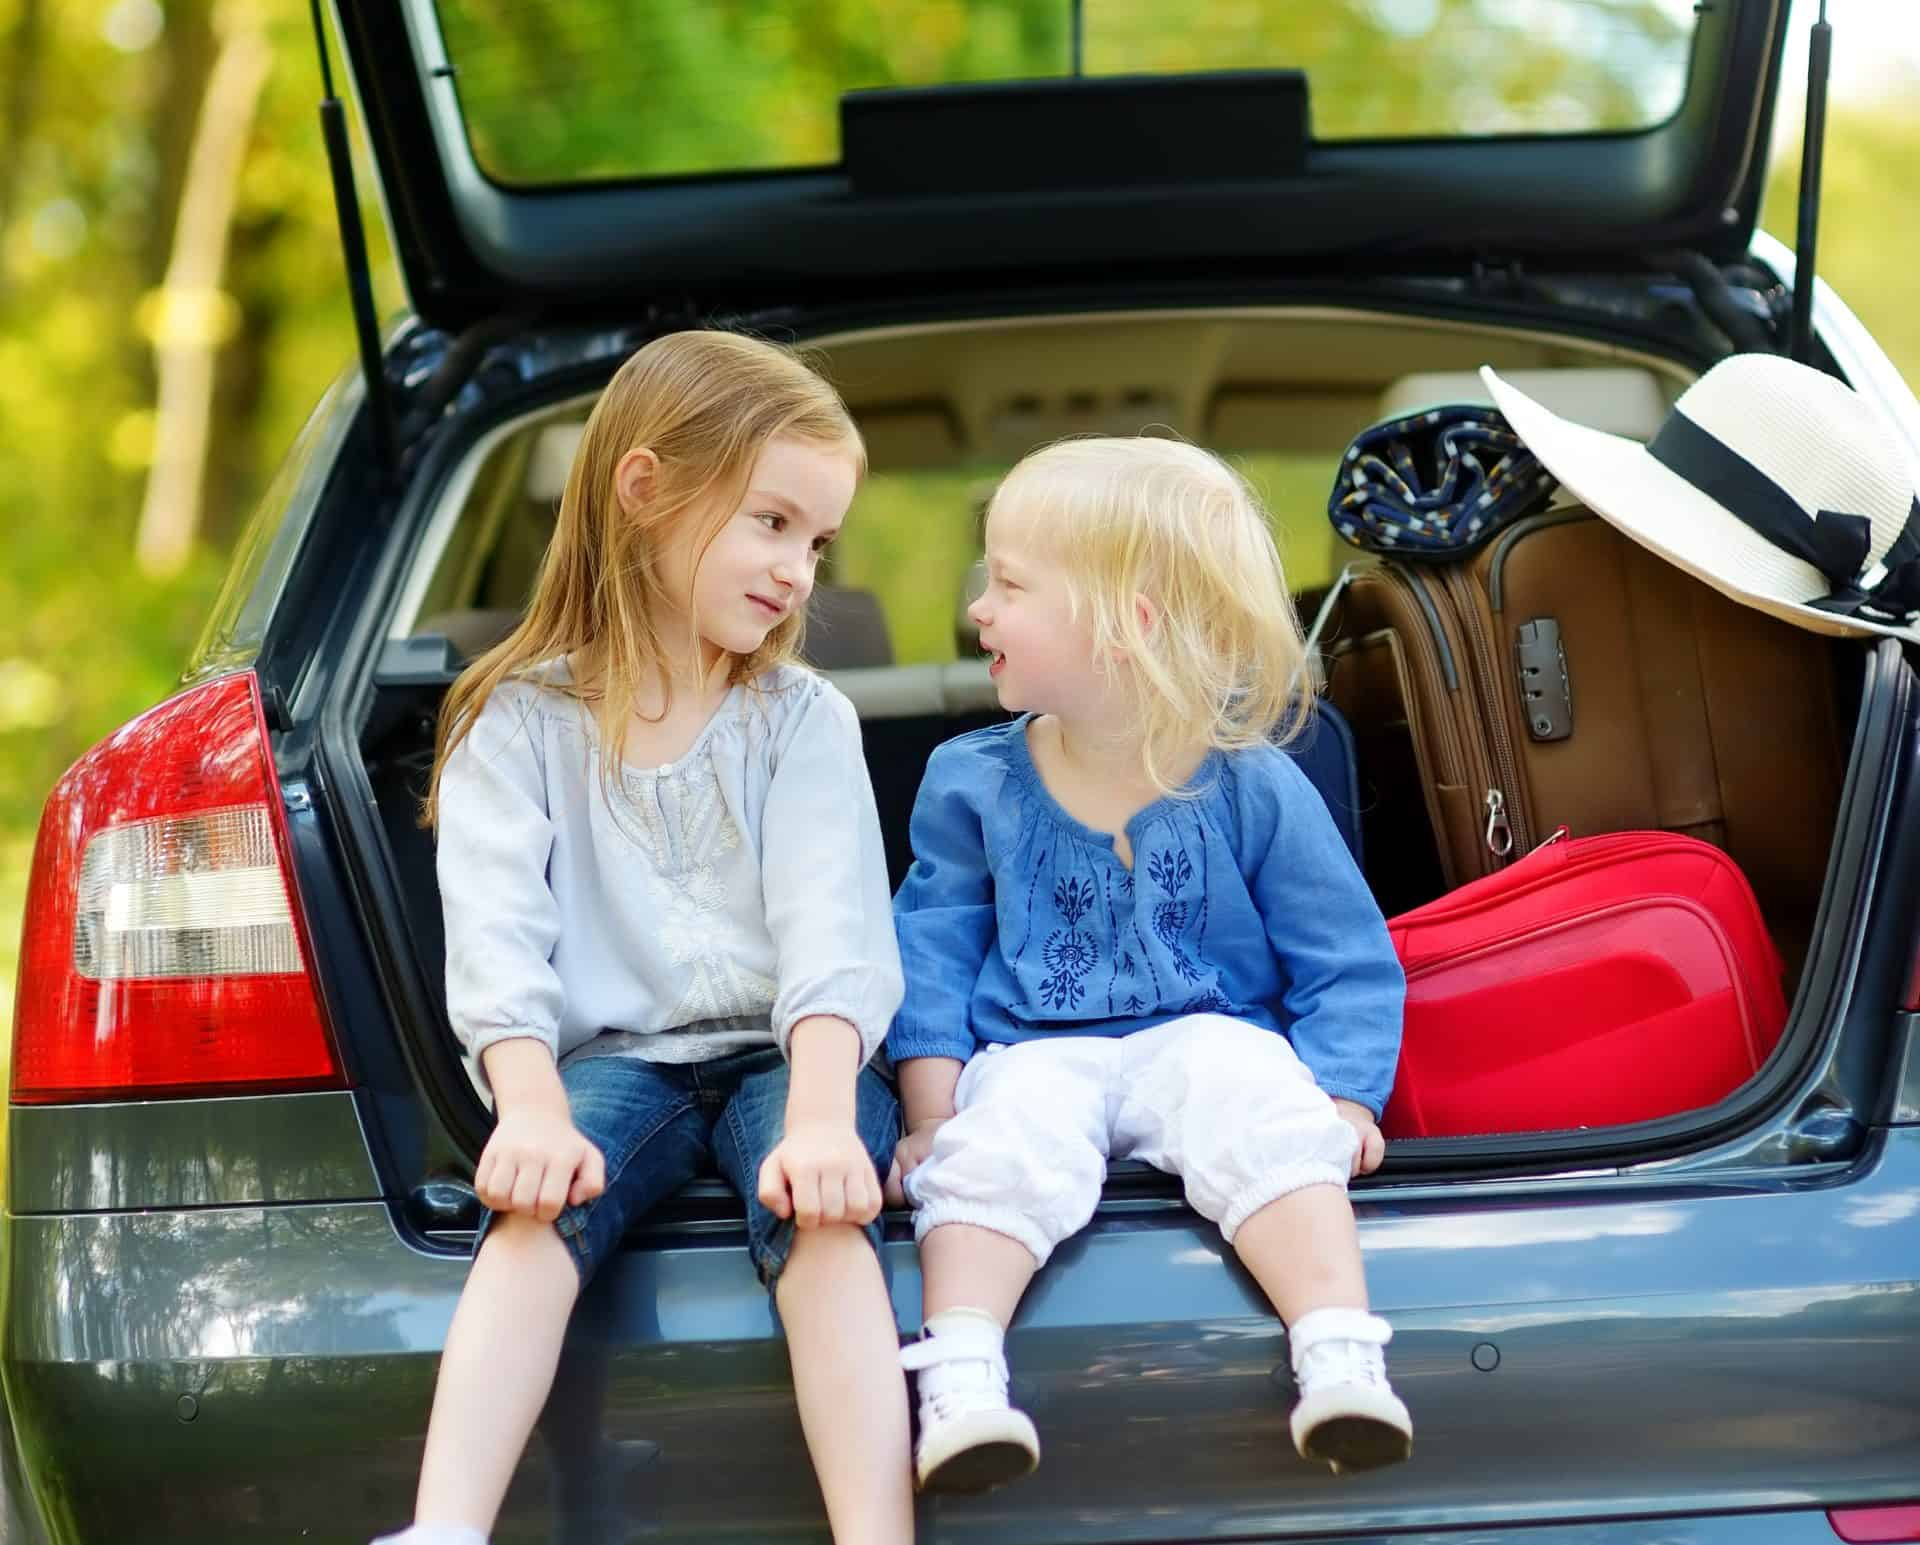 How to Take a Road Trip With Kids by Yourself